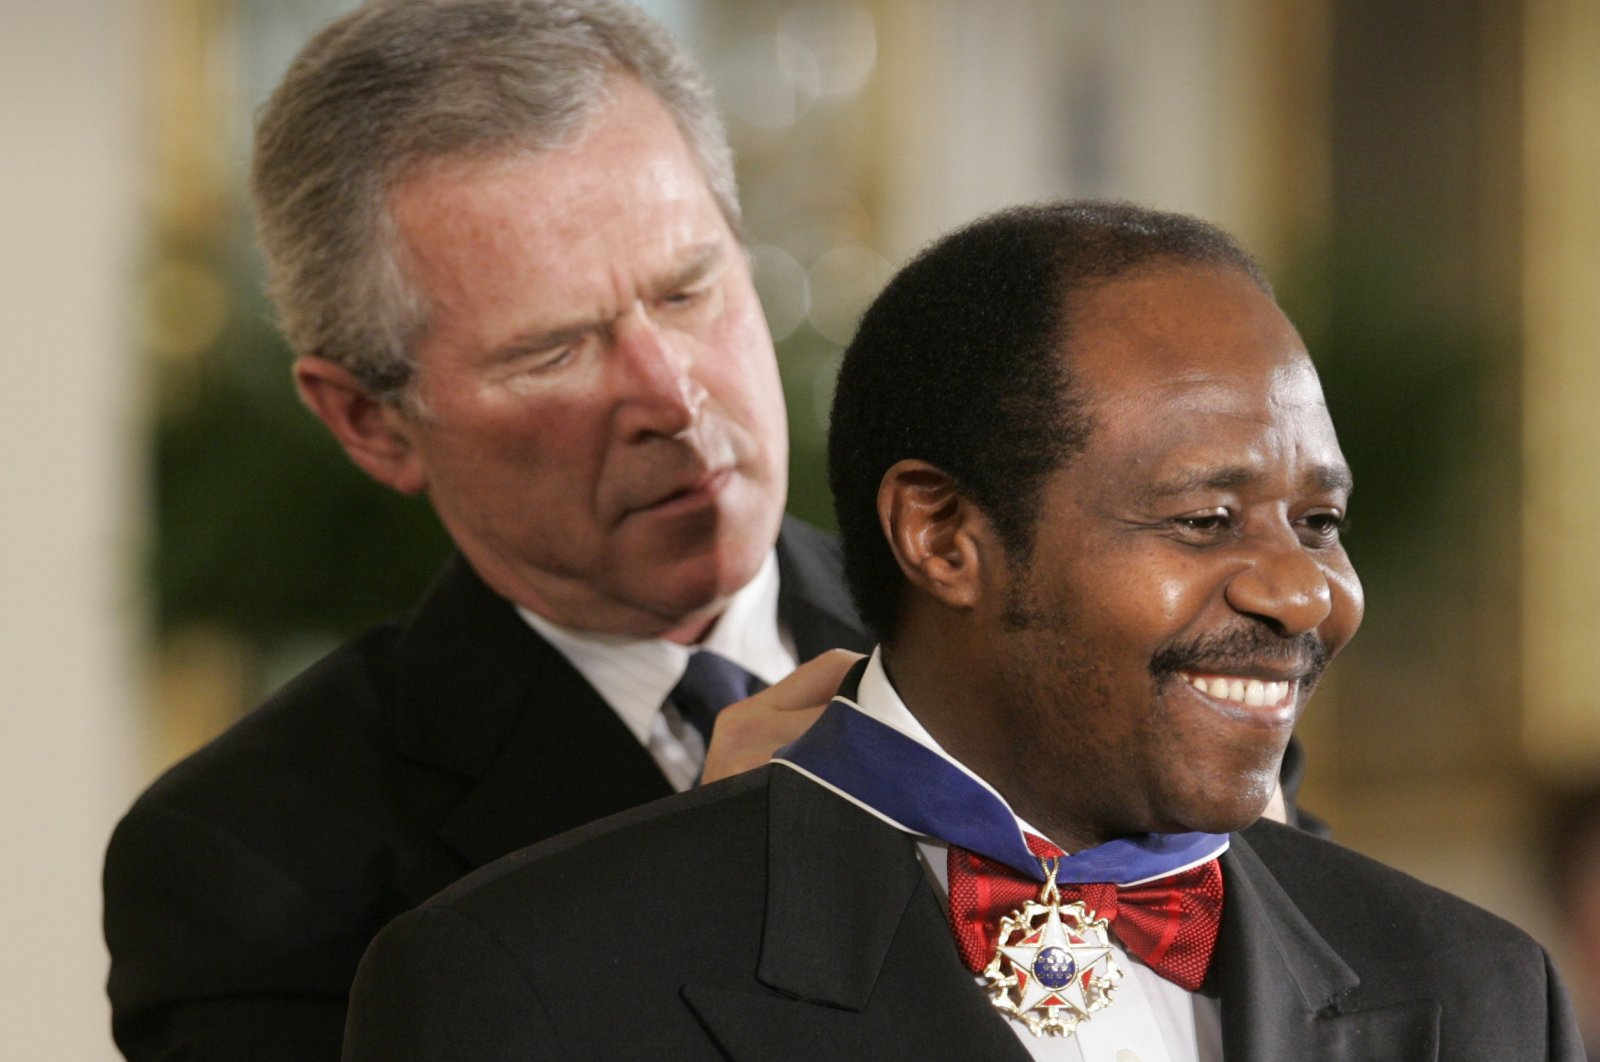 President Bush awards Paul Rusesabagina, who sheltered people at a hotel he managed during the 1994 Rwandan genocide, the Presidential Medal of Freedom Award in the East Room of the White House, in Washington D.C., Nov. 9, 2005. (AP Photo)